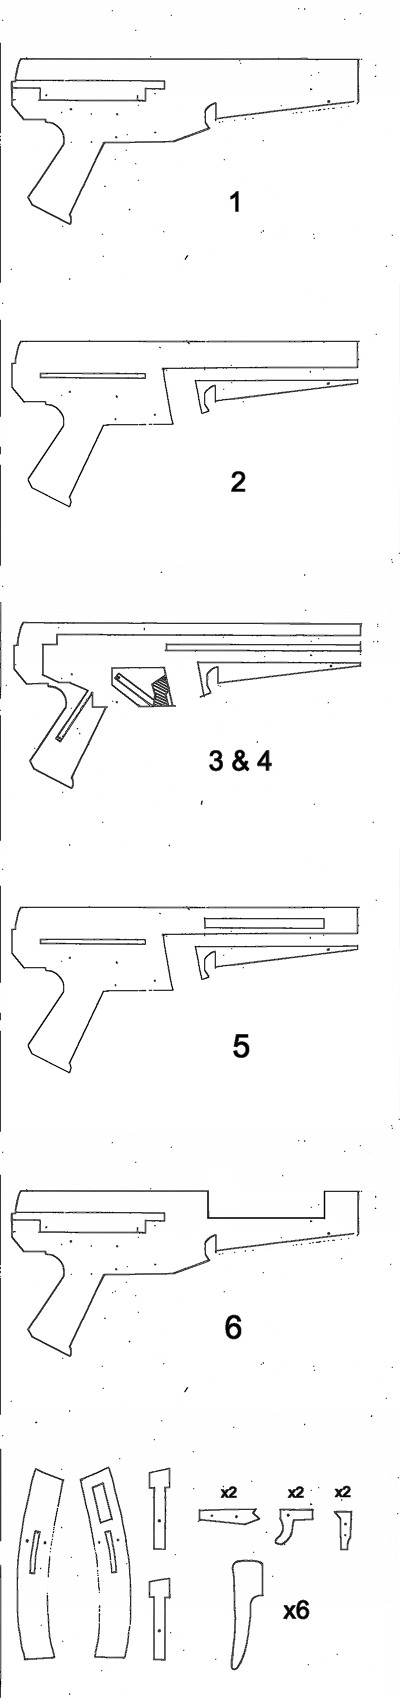 Cardboard Mp5 Templates Gunsamerica Digest